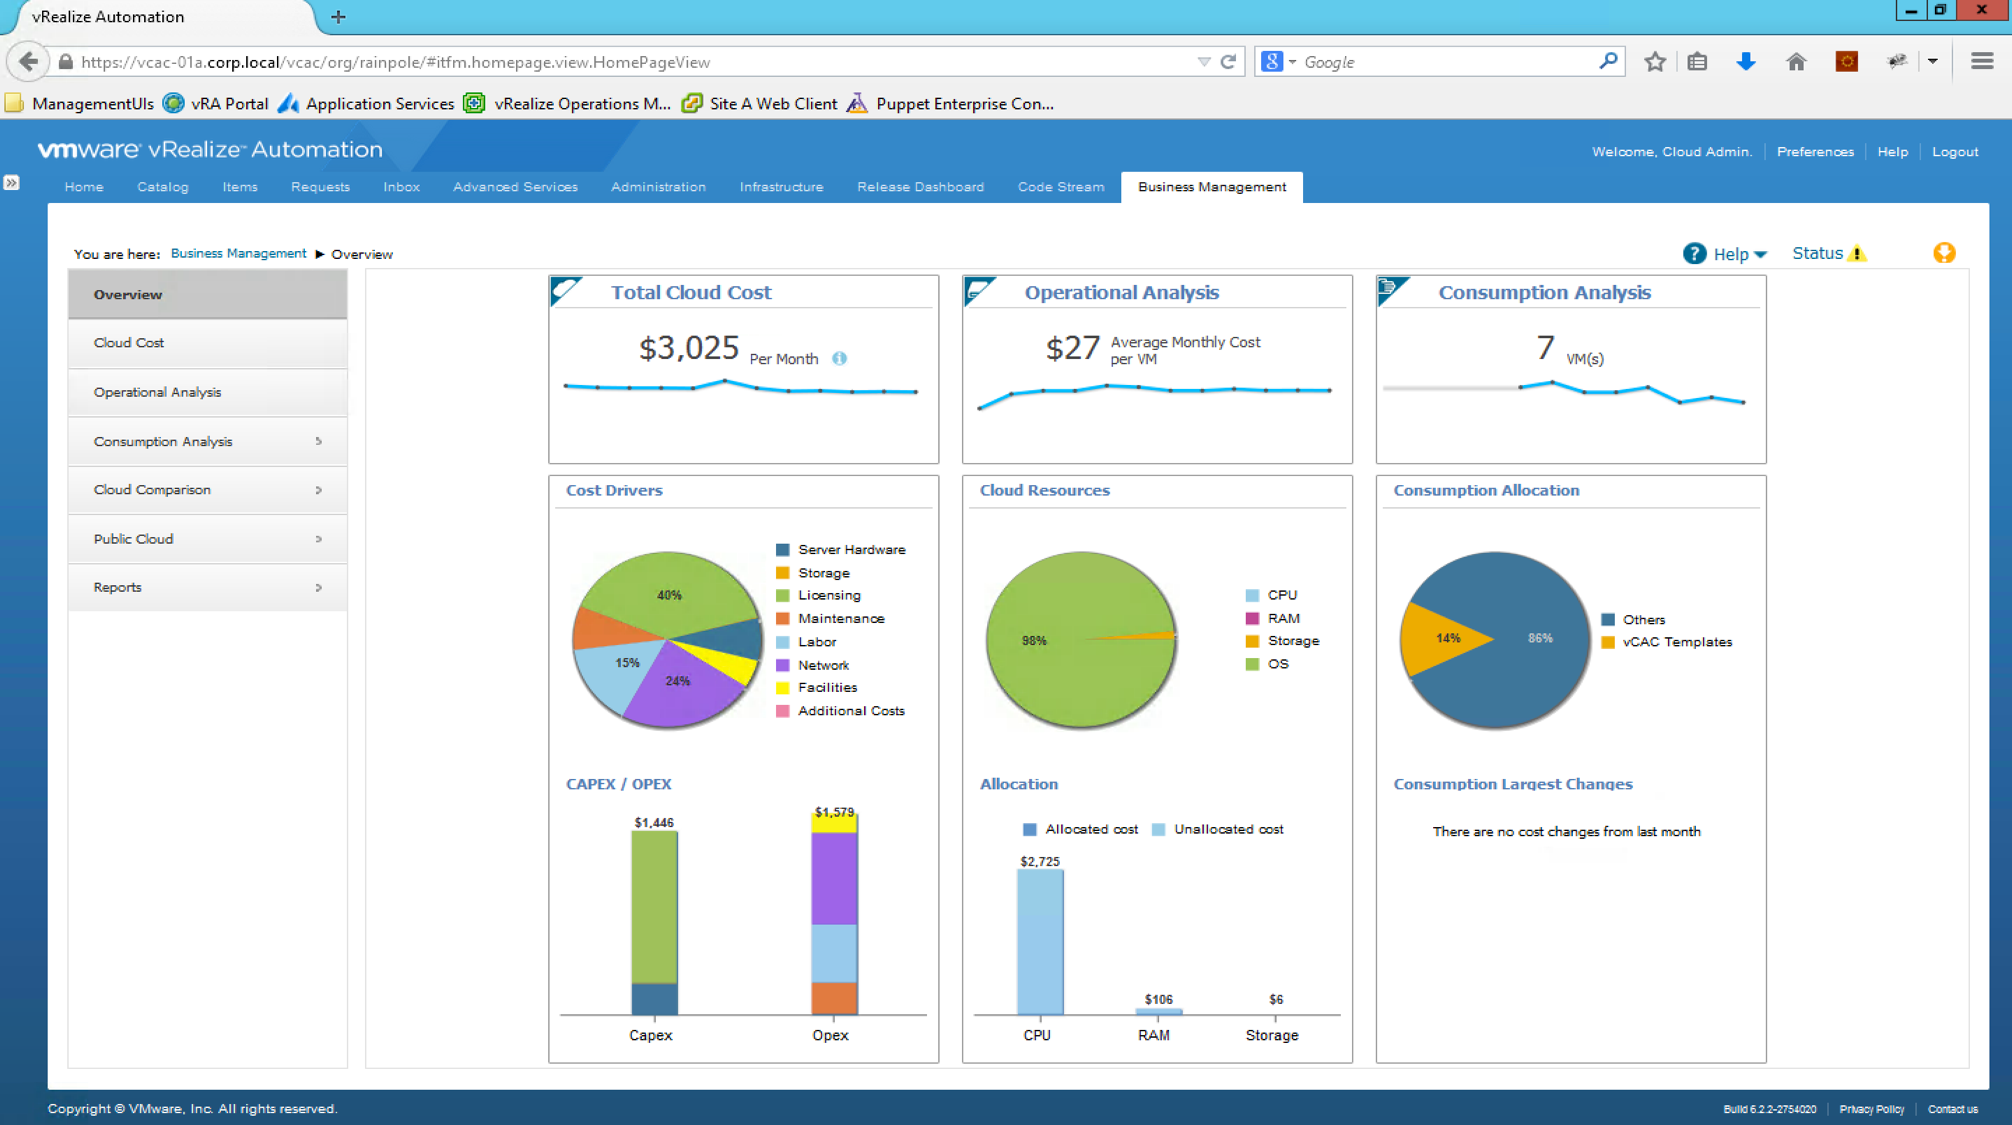 vRealize Automation or OpenStack or both? – VMtoCloud.com